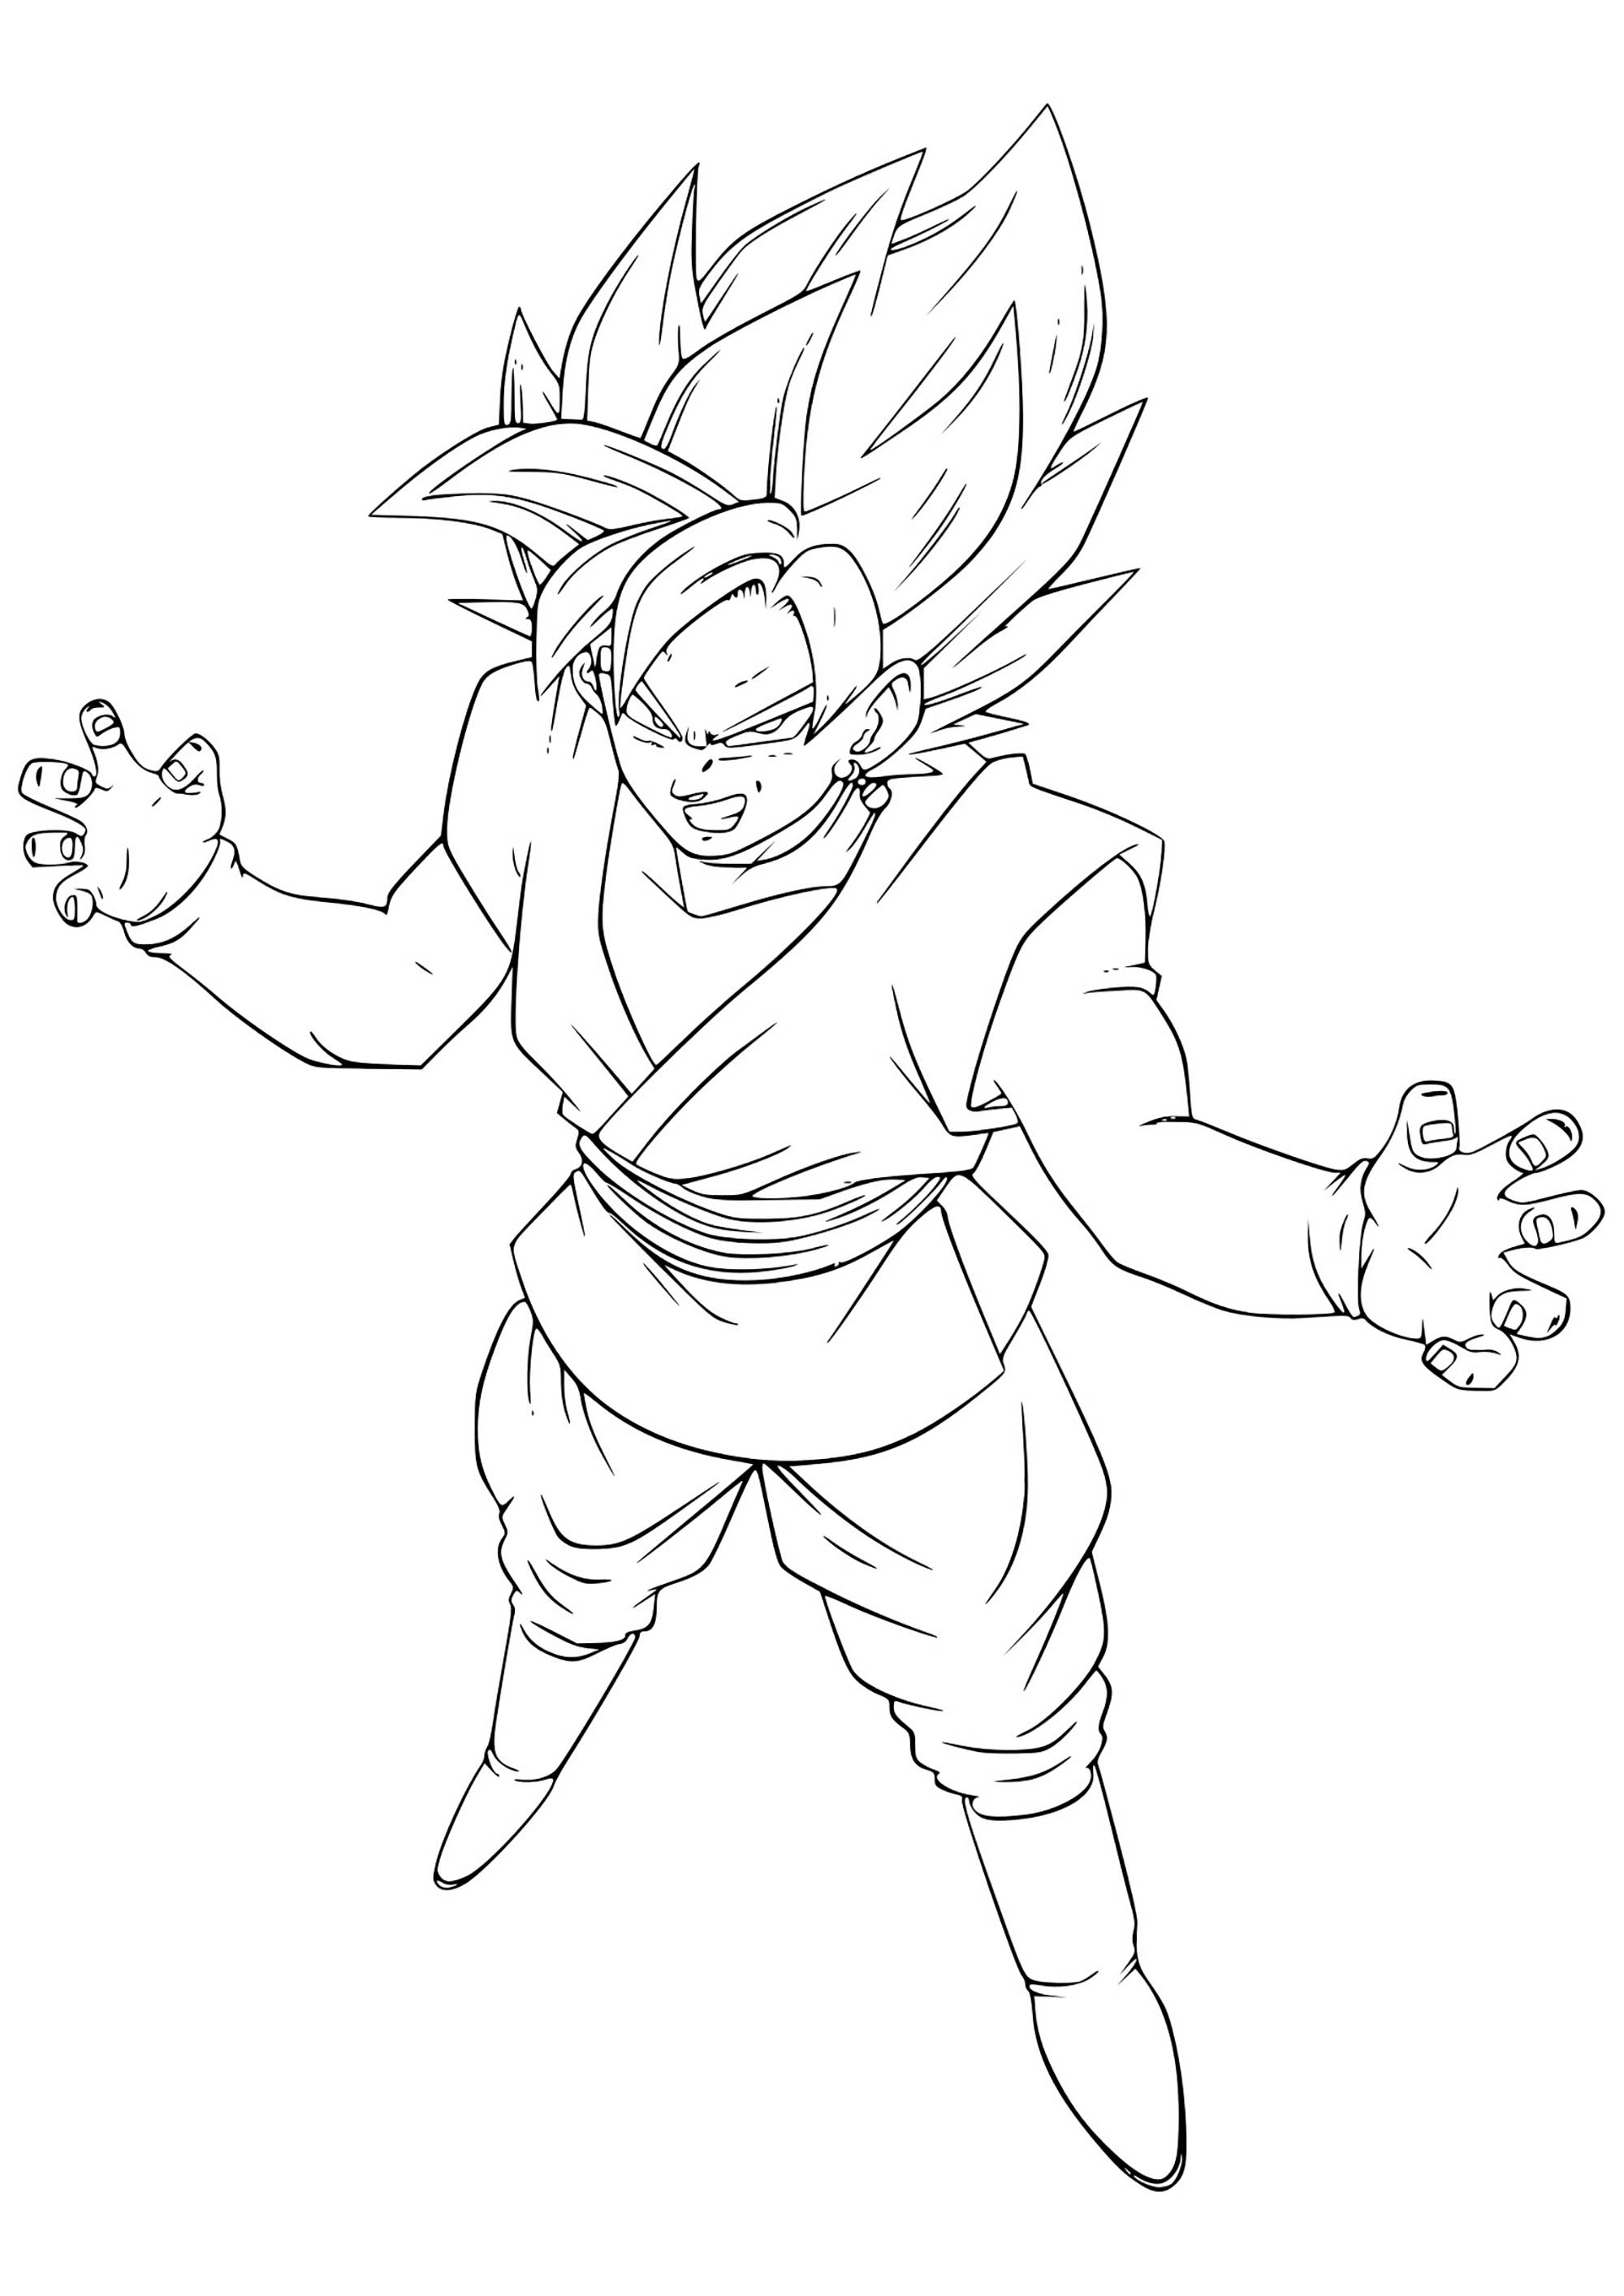 coloring pictures of goku goku coloring pages to download and print for free of goku coloring pictures